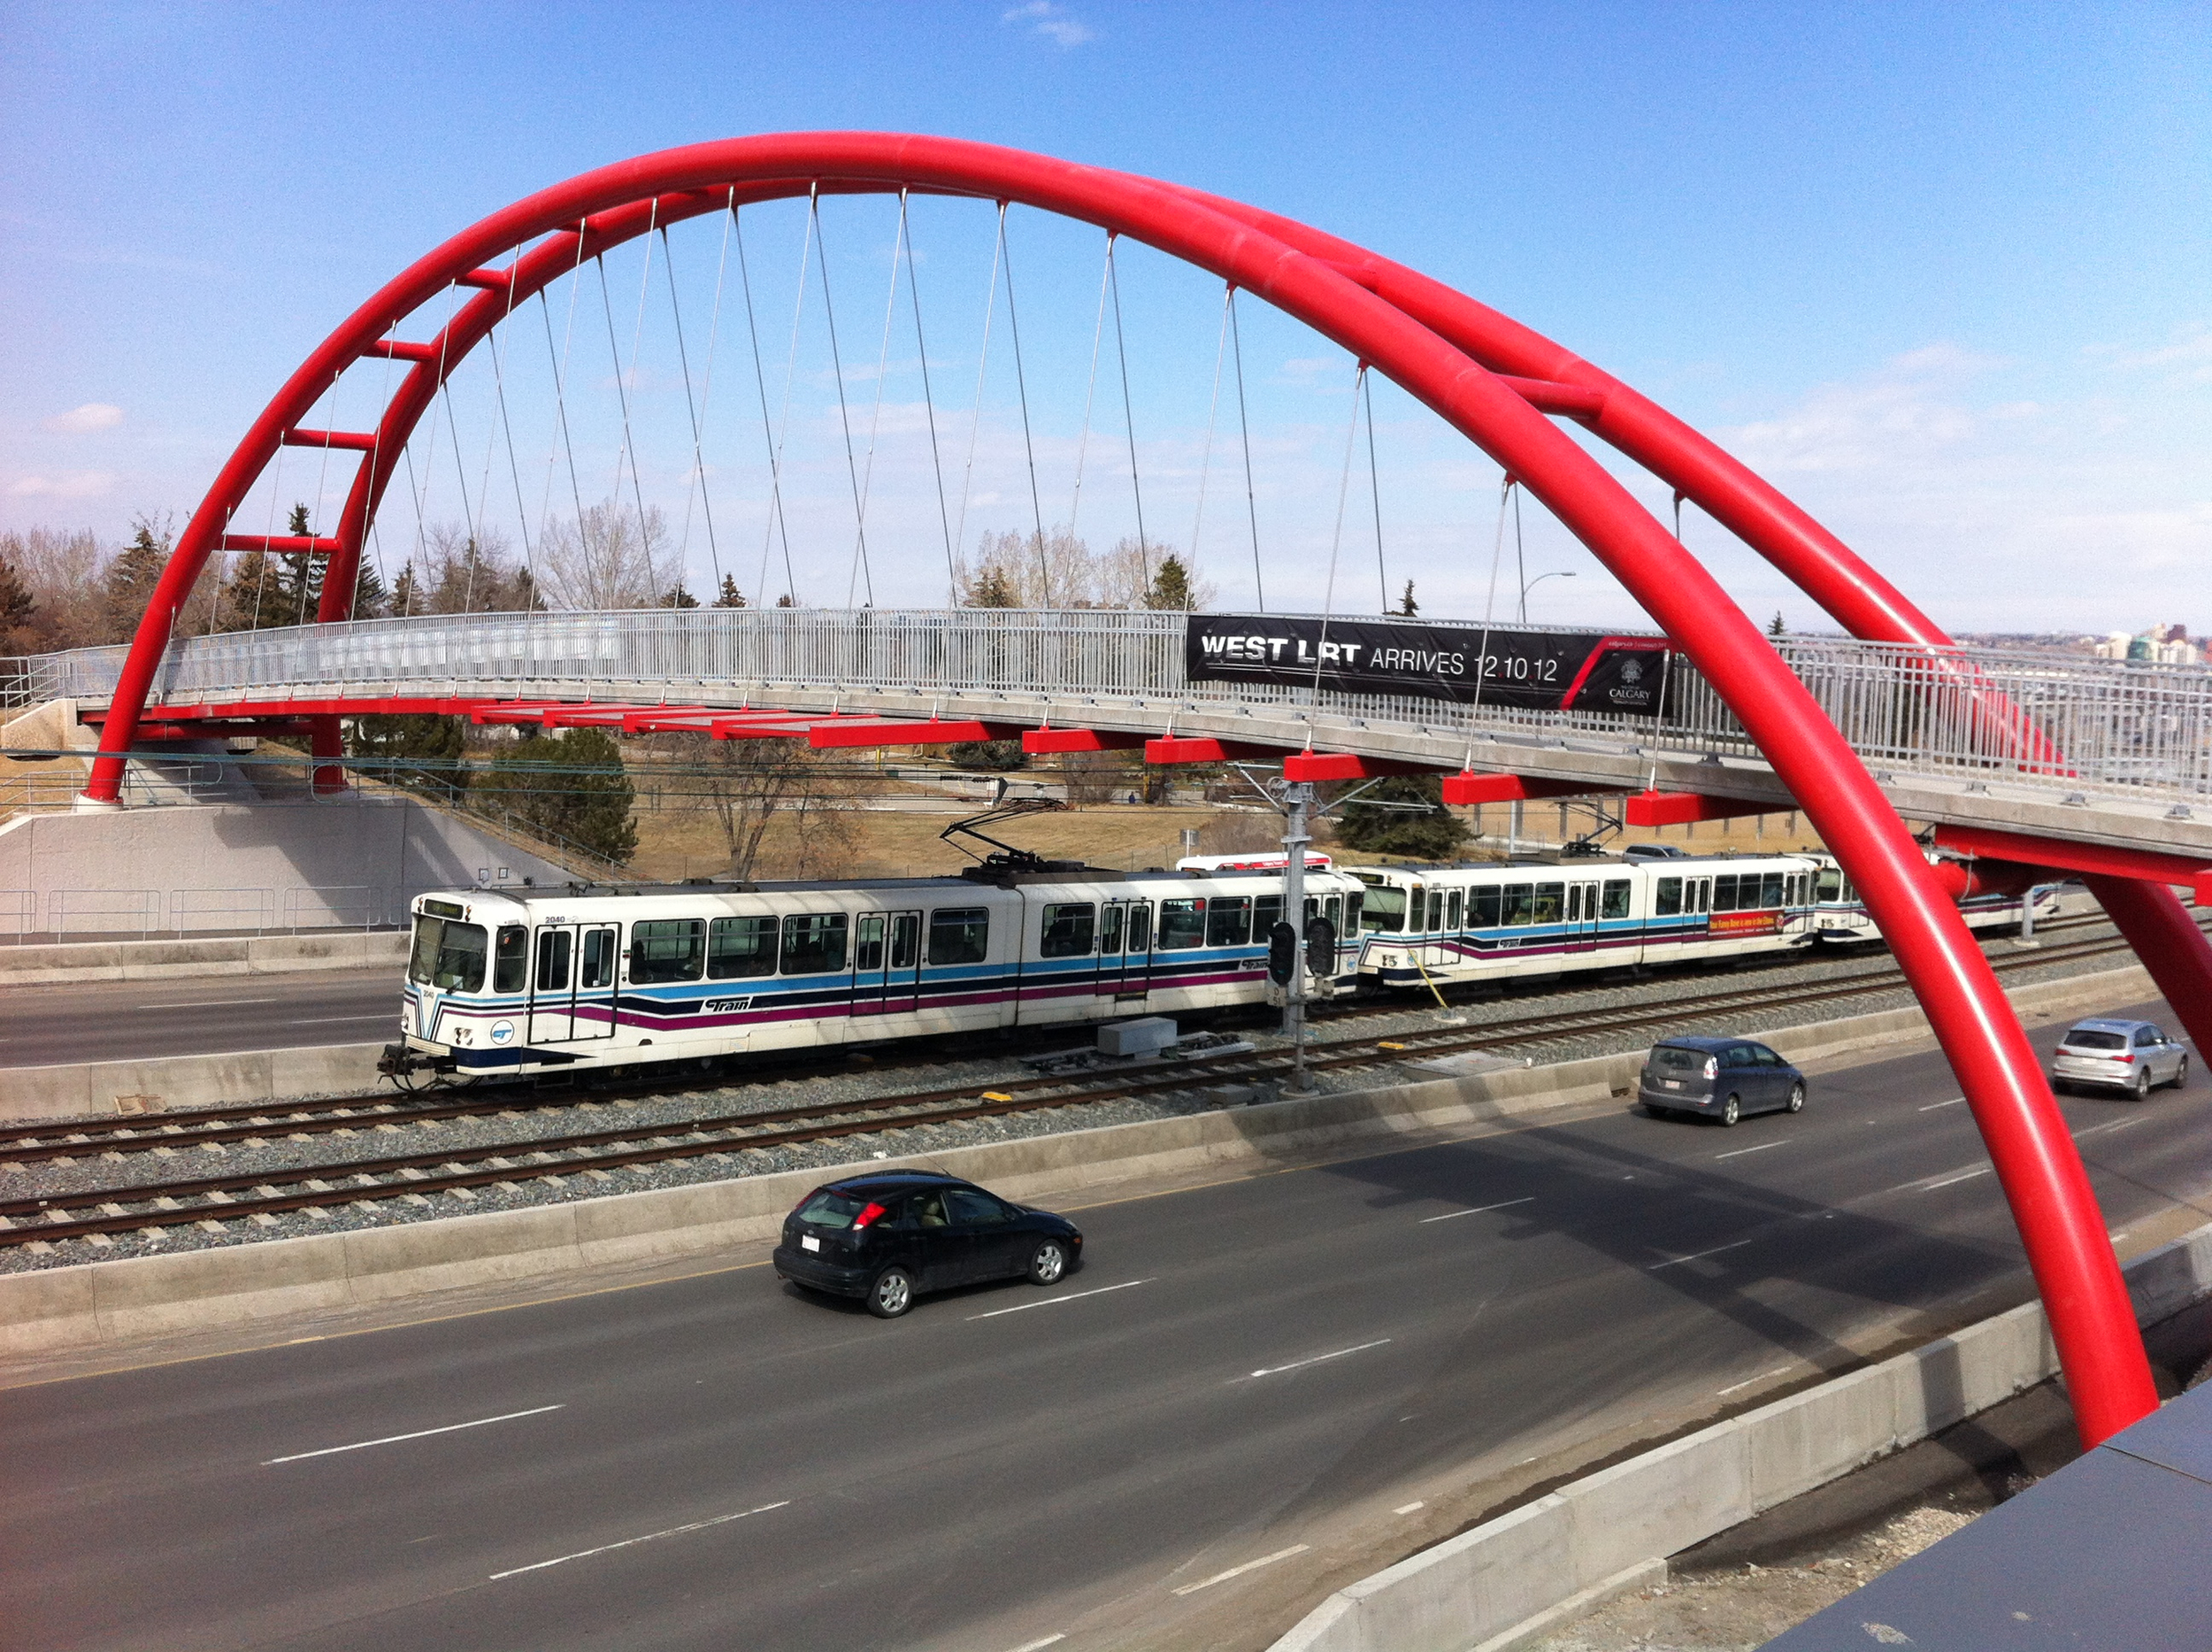 Killarney even has its own signature gateway red pedestrian bridge across the Bow (Bow Trail, not River). And it is actually in Shaganappi not Killarney but it is the gateway to the Bow River for Kilarnenians. Architect unknown.